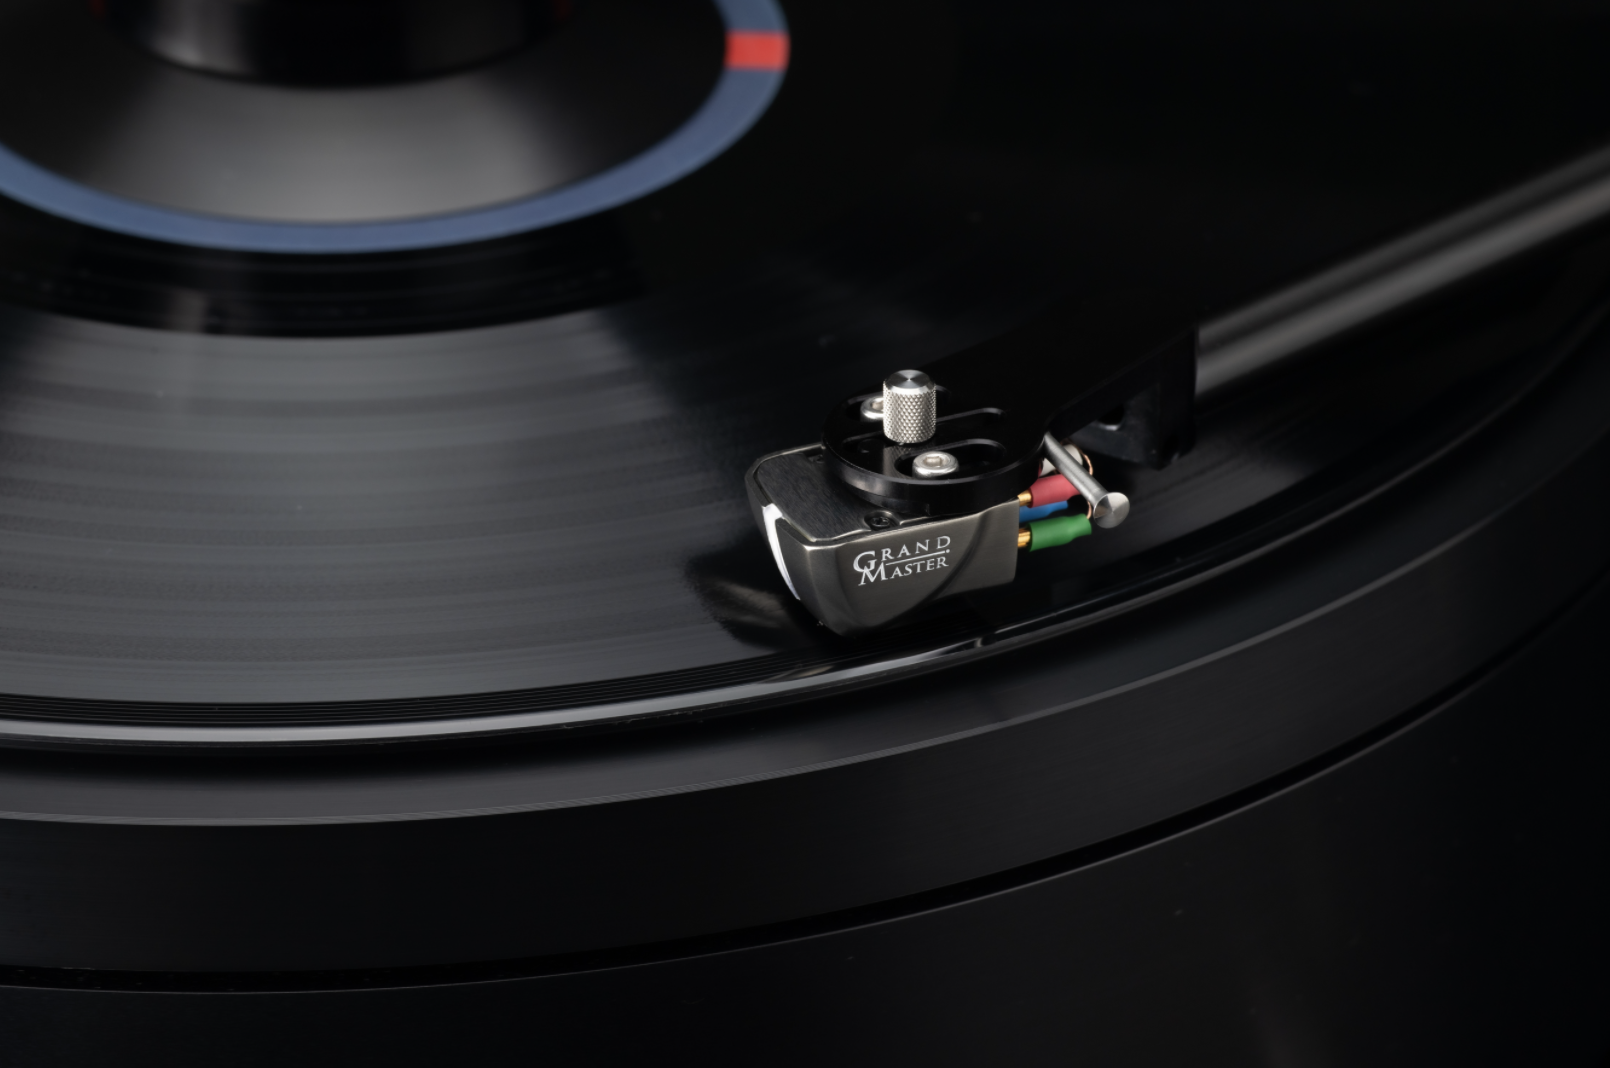 DS Audio Grand Master Cartridge and Grand Master Equalizer